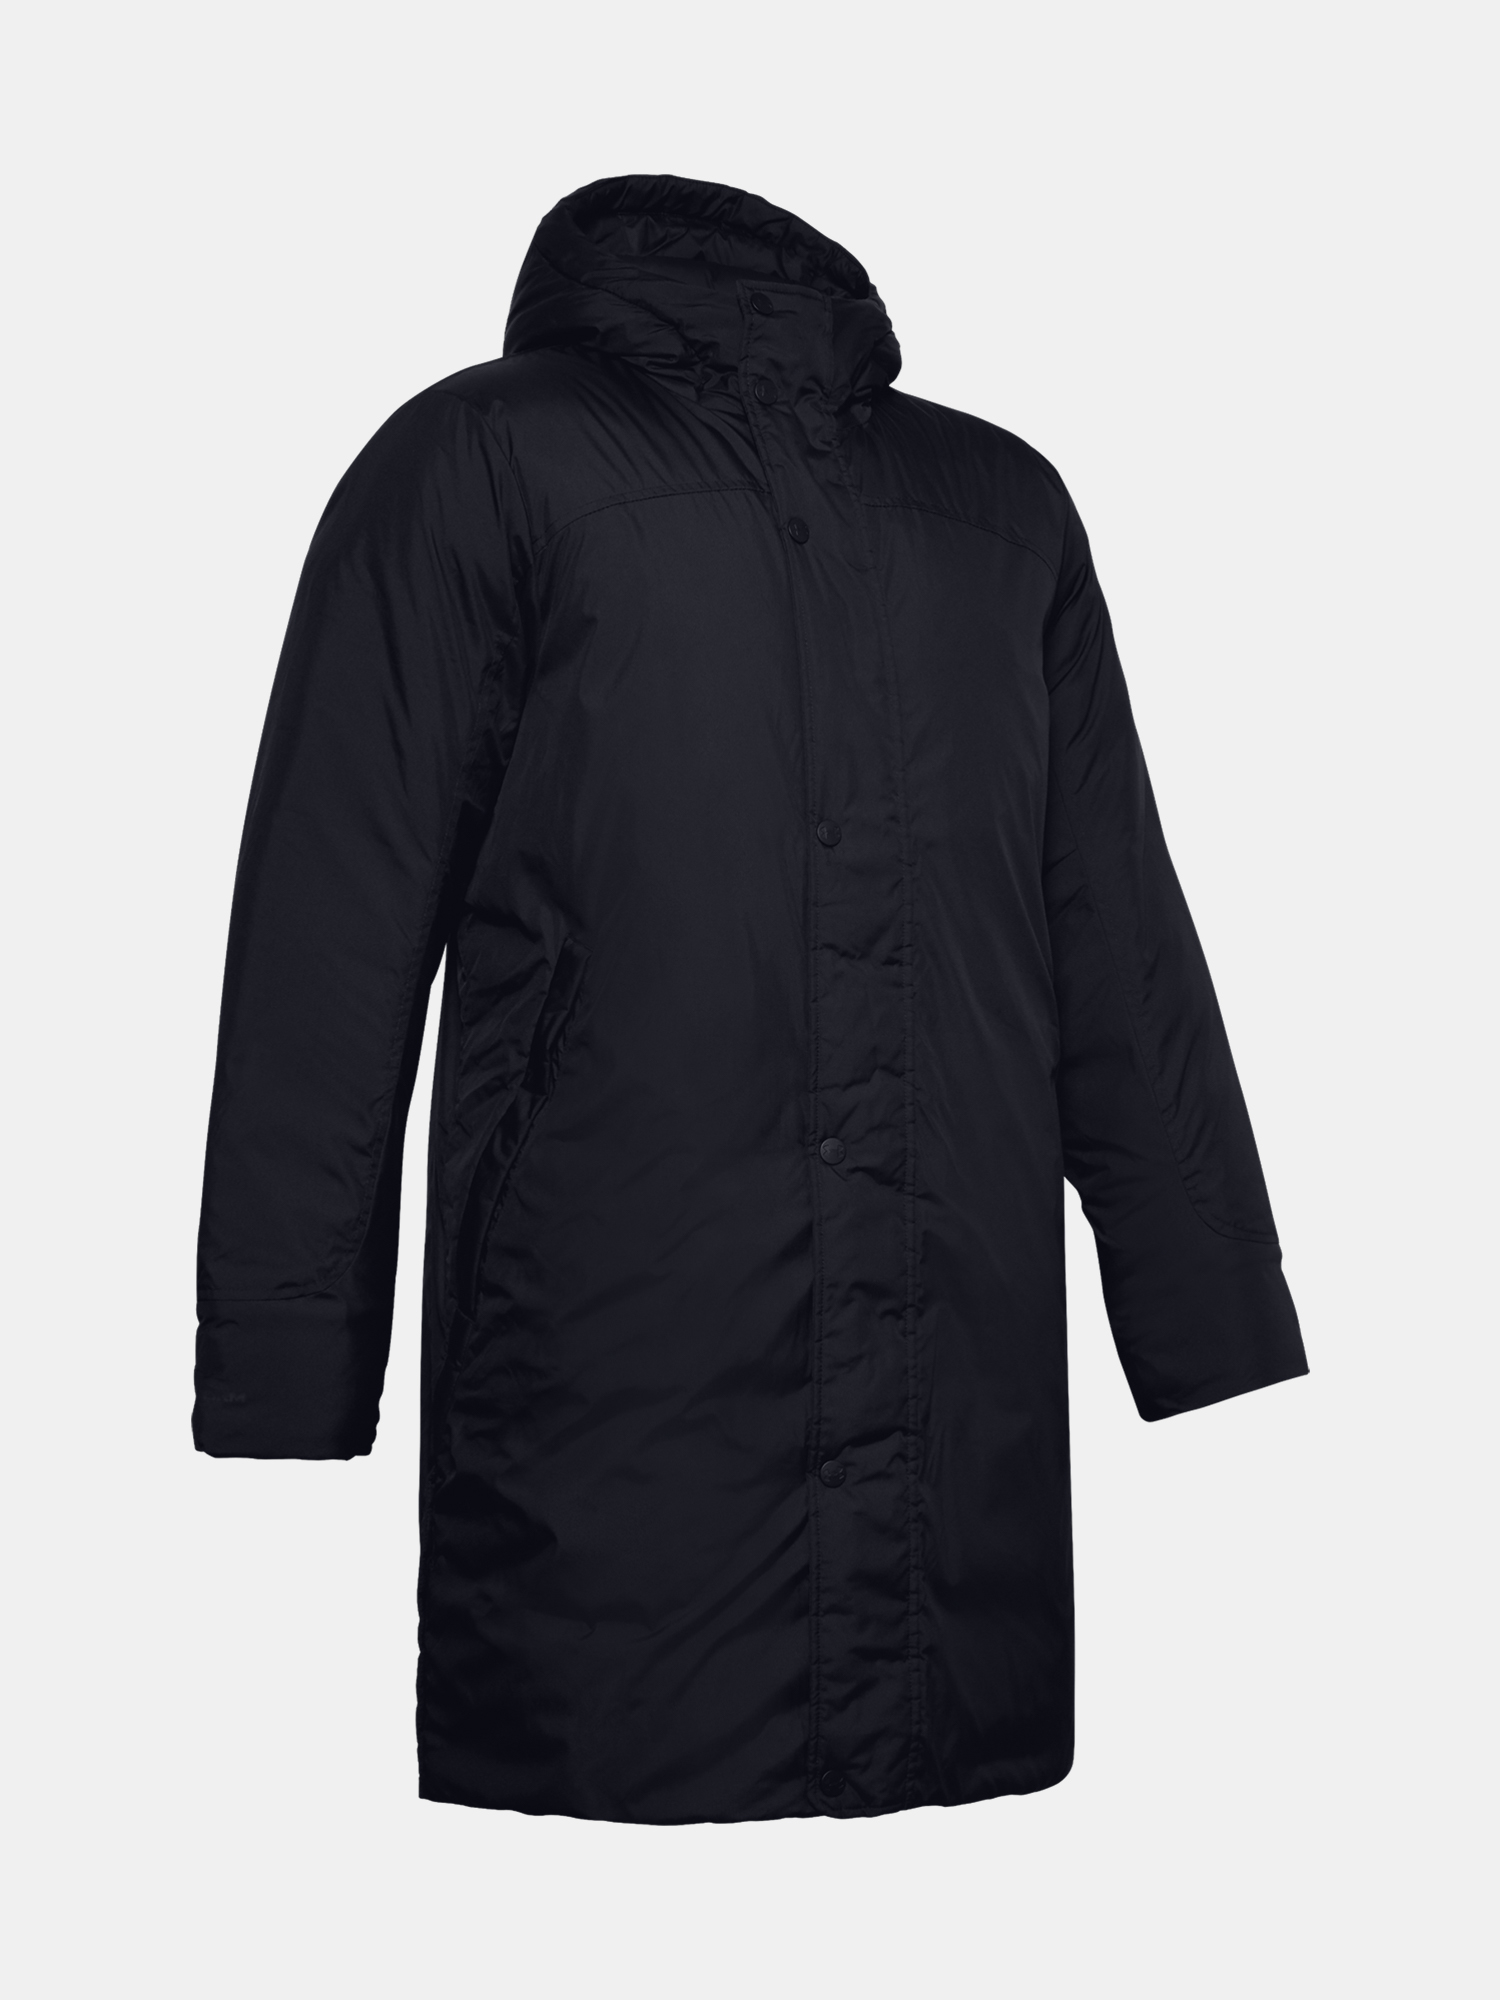 Bunda Under Armour Armour Insulated Bench Coat-BLK (3)